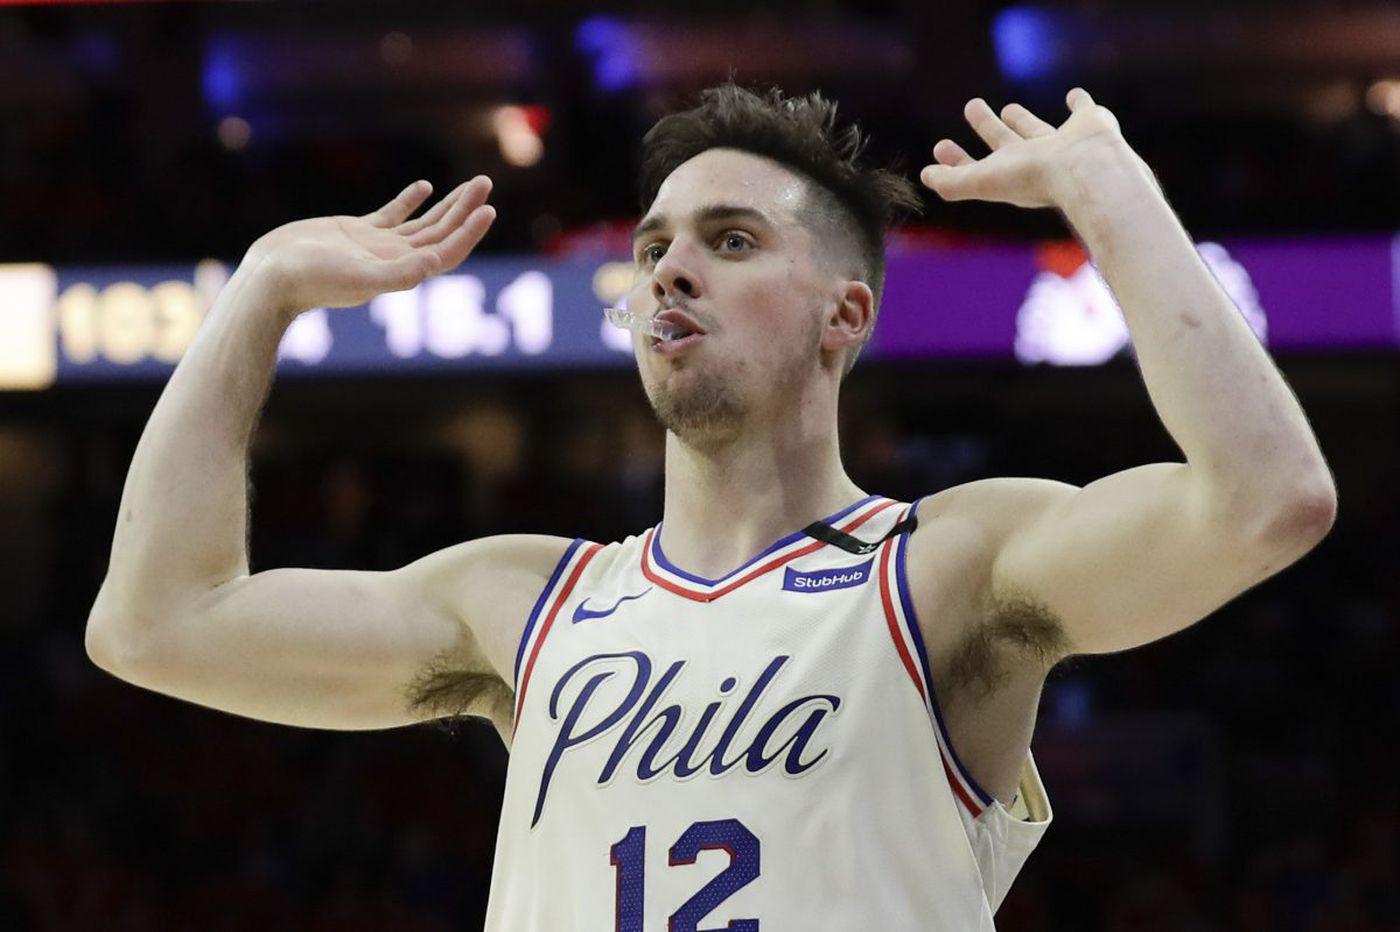 T.J. McConnell a surprising savior for the Sixers in Game 4 against Celtics | Mike Sielski